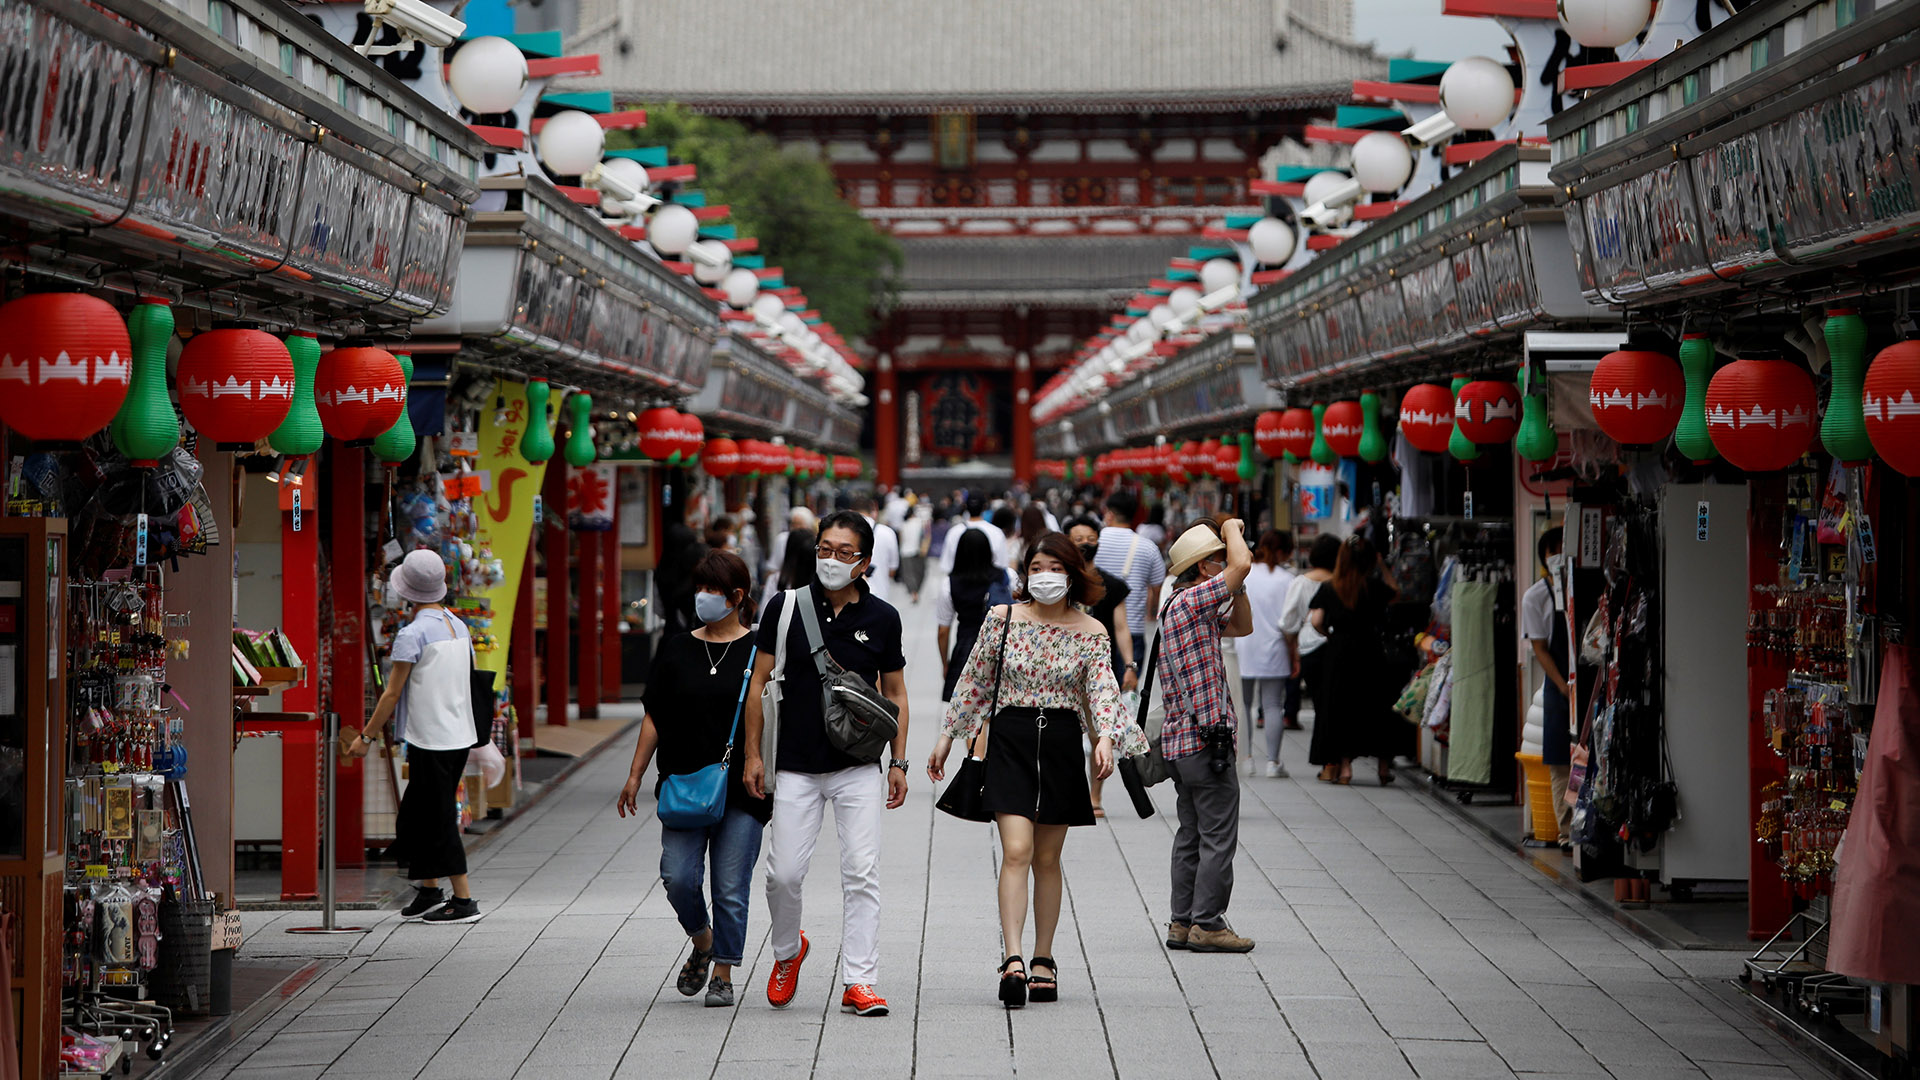 Tokyo raises virus alert to highest as daily COVID-19 cases set record